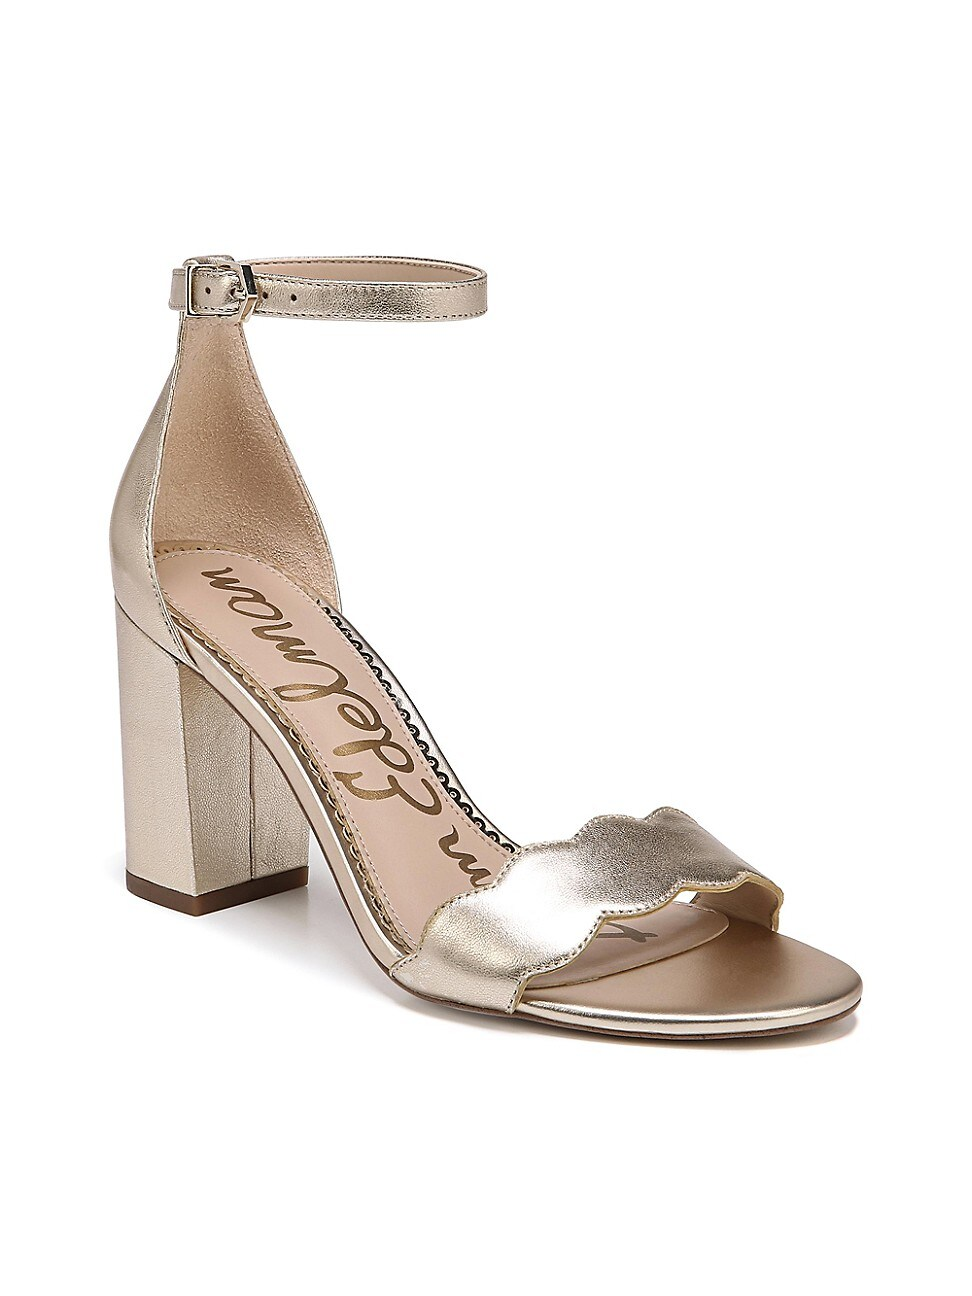 Sam Edelman Women's Odila Scallop Metallic Leather Sandals In Gold